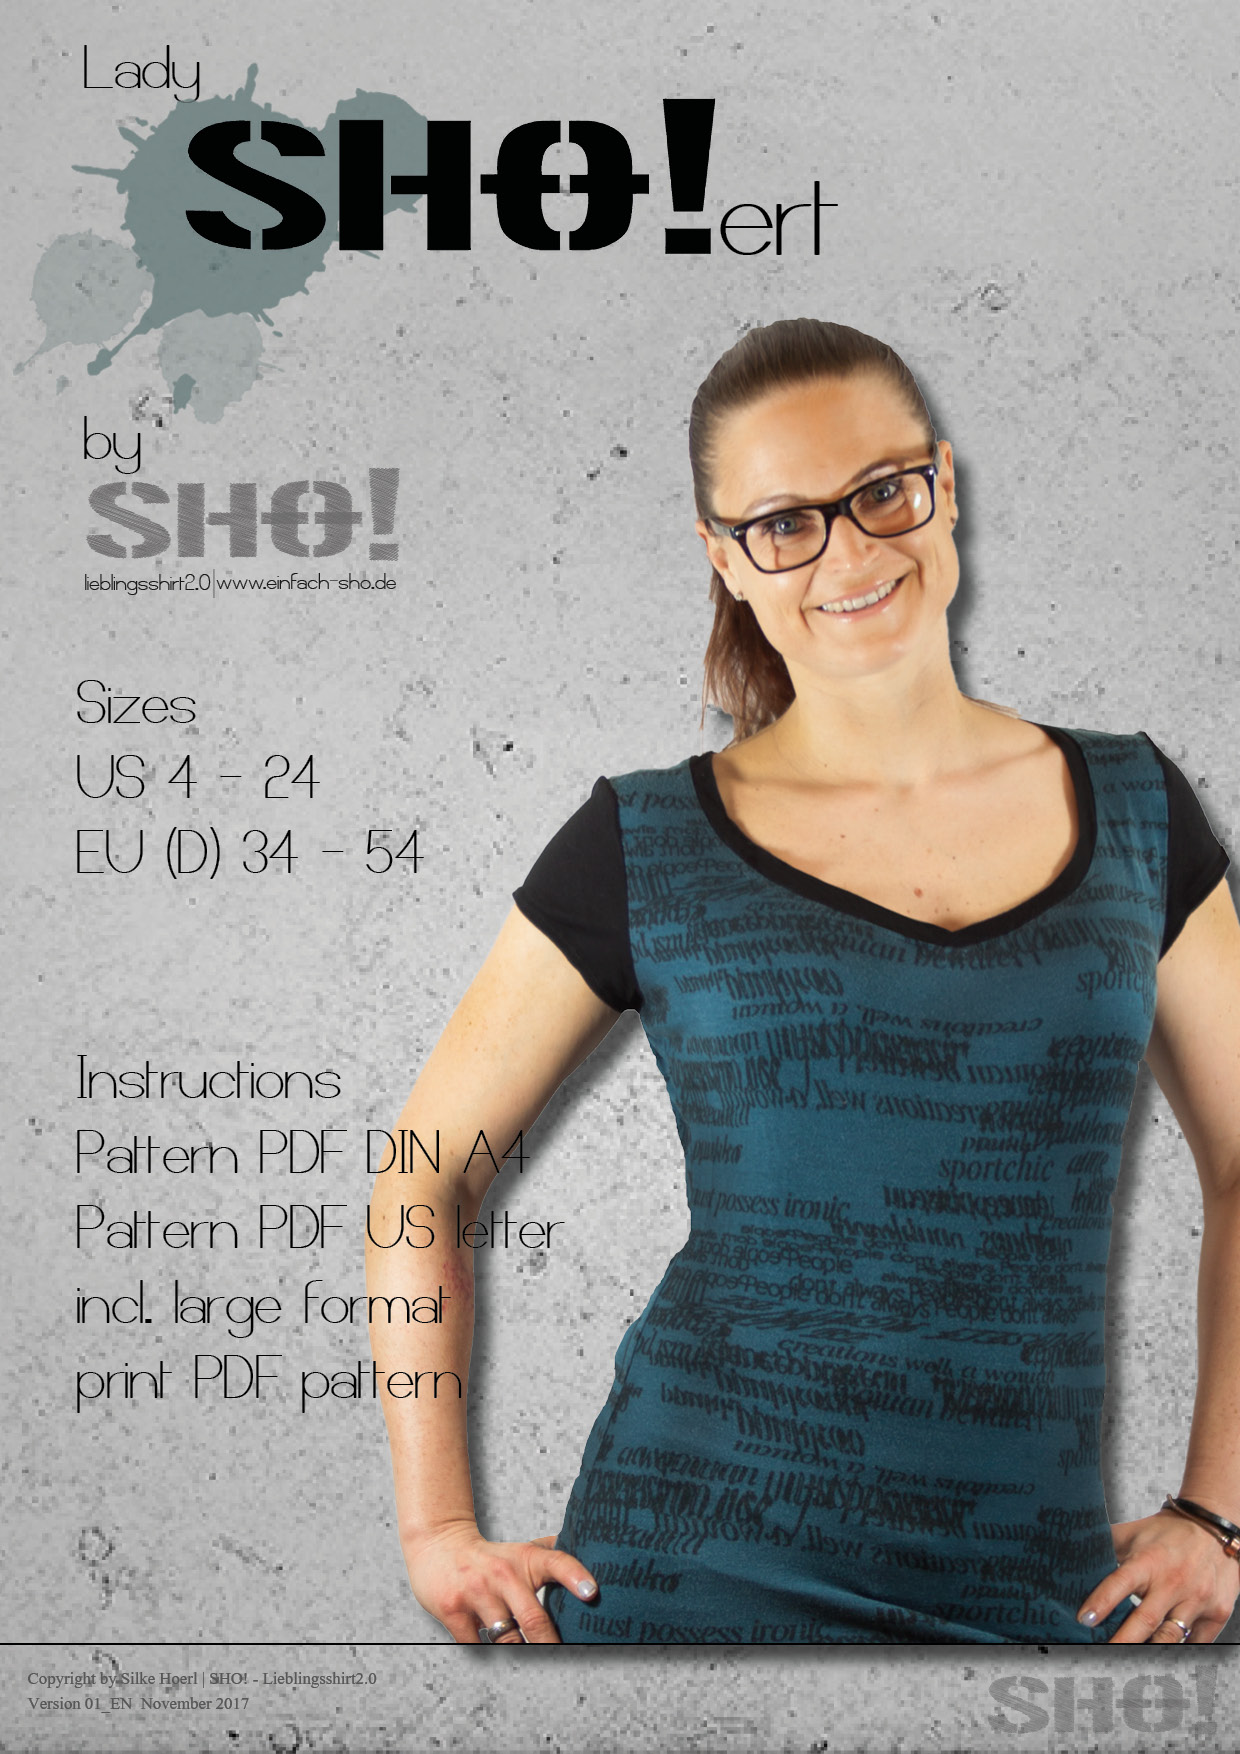 lady SHO!ert - a slimfit basic shirt